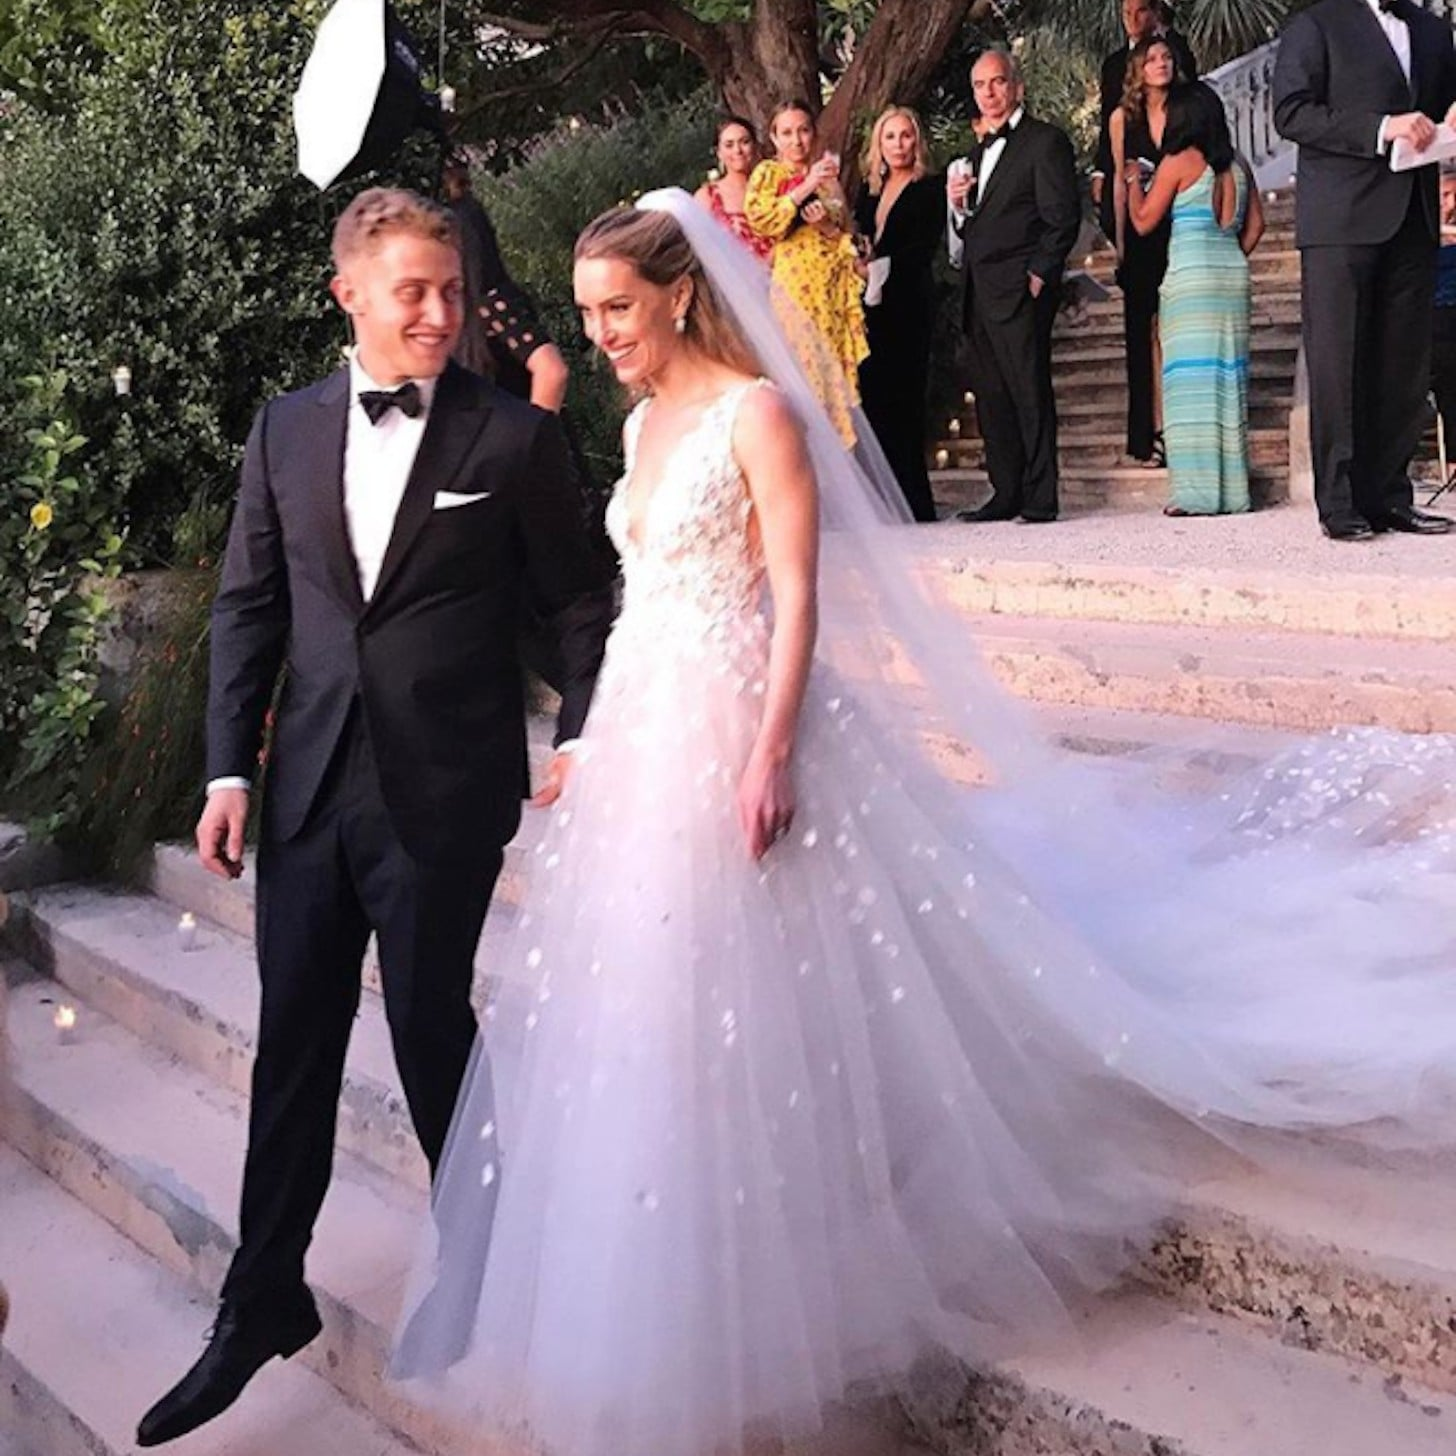 Rachel crane oscar de la renta wedding dress popsugar fashion rachel crane oscar de la renta wedding dress popsugar fashion australia junglespirit Choice Image